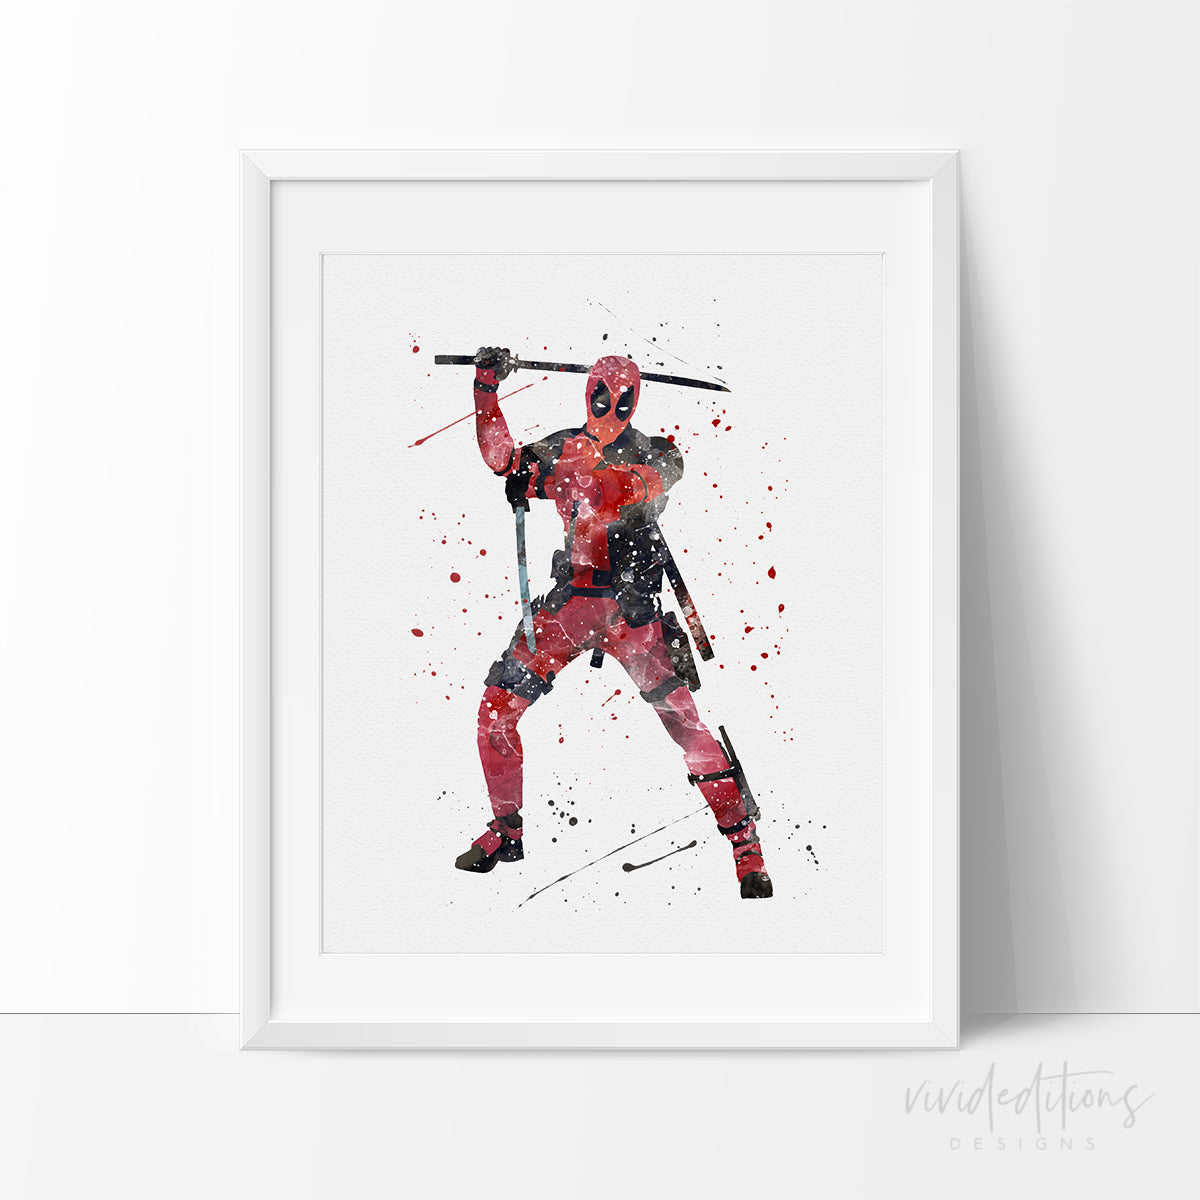 Deadpool Watercolor Art Print 2 Art Print - VIVIDEDITIONS